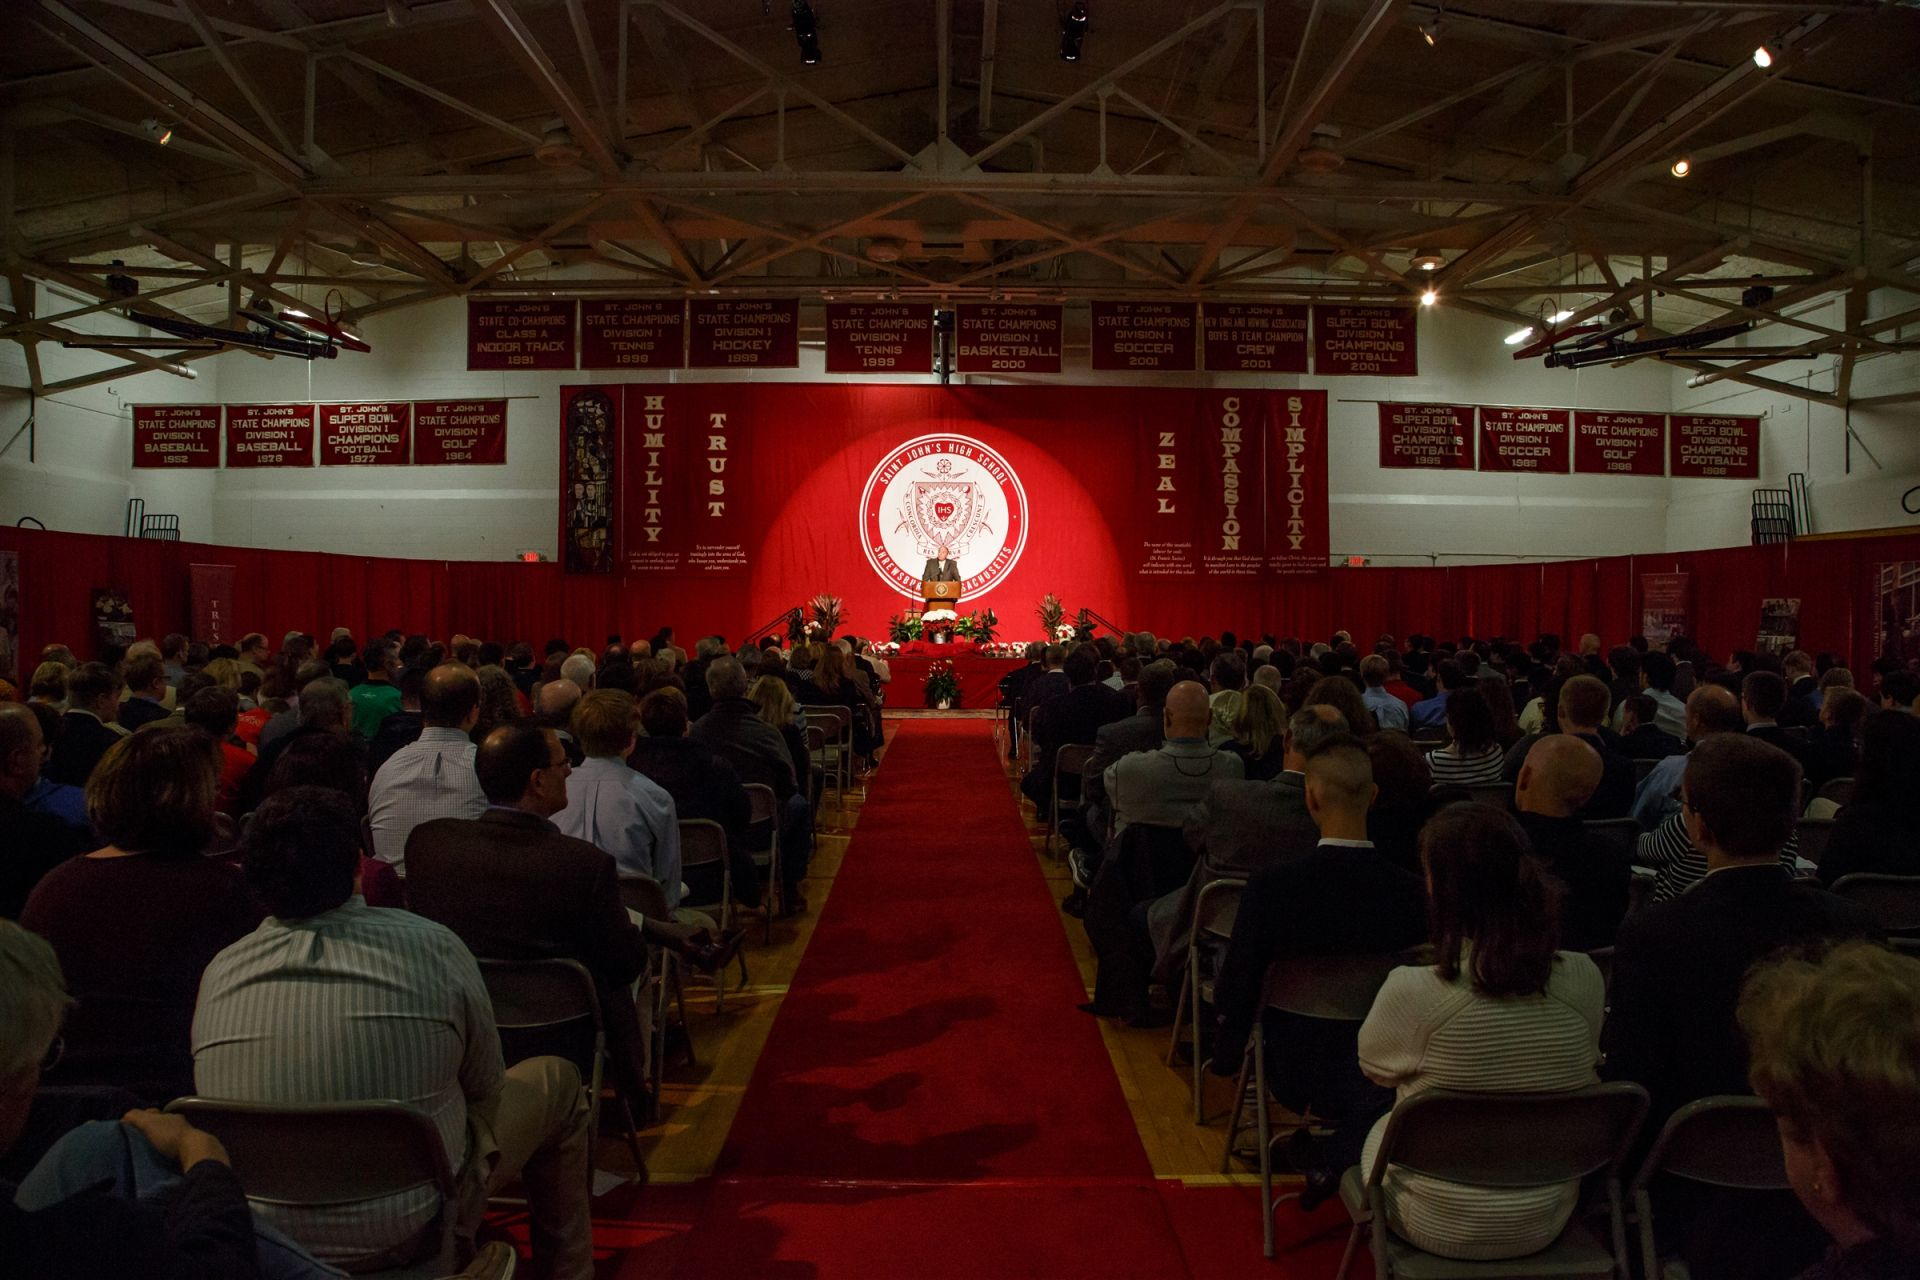 Students, faculty, alumni, and guests filled the Coaches Pavilion for the 13th annual Abdella lecture